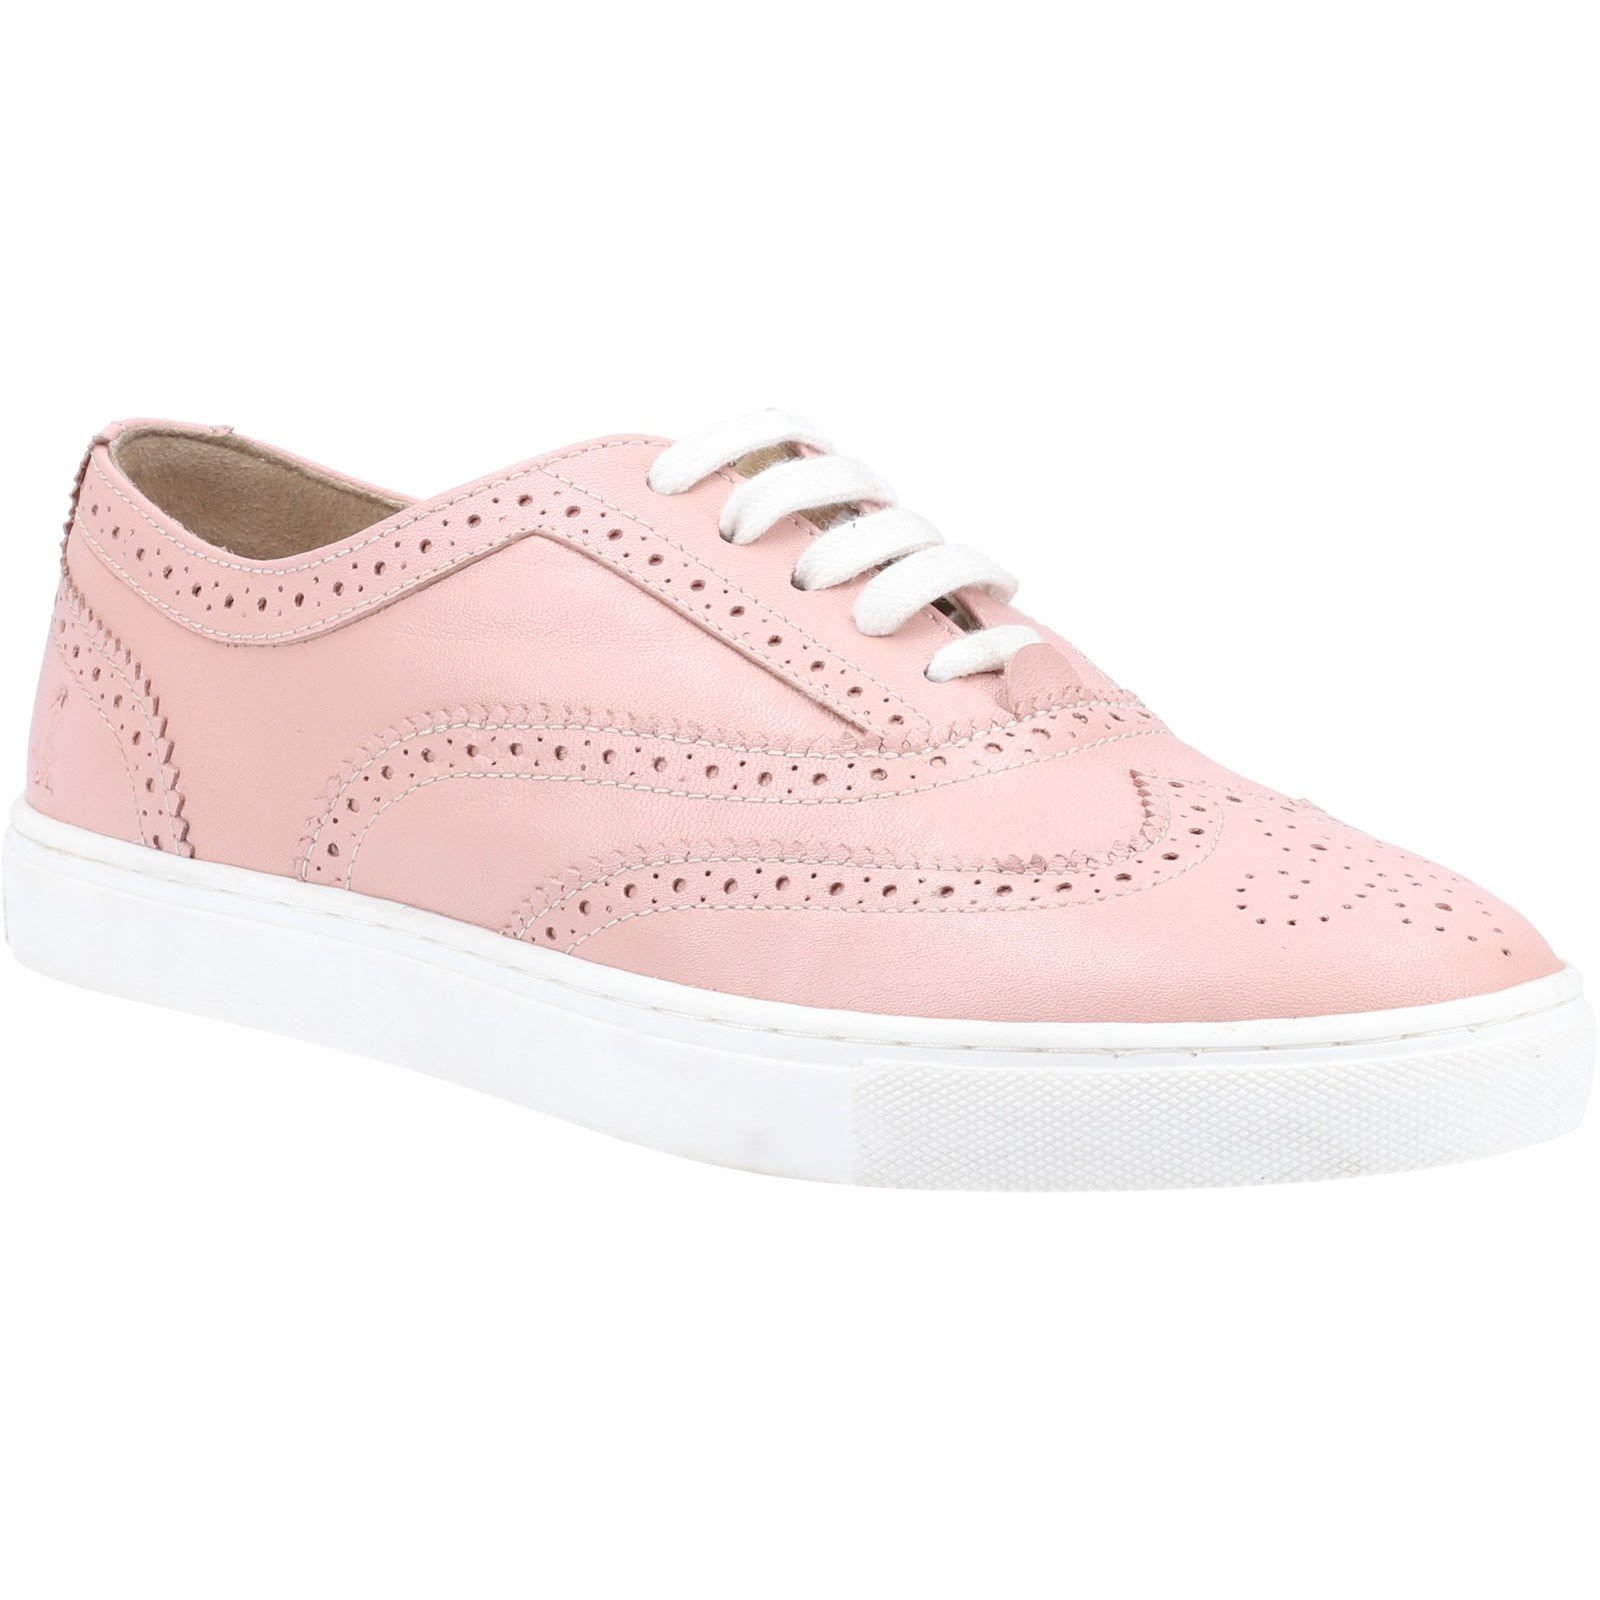 Hush Puppies Women's Tammy Trainer Various Colours 32847 - Blush 7